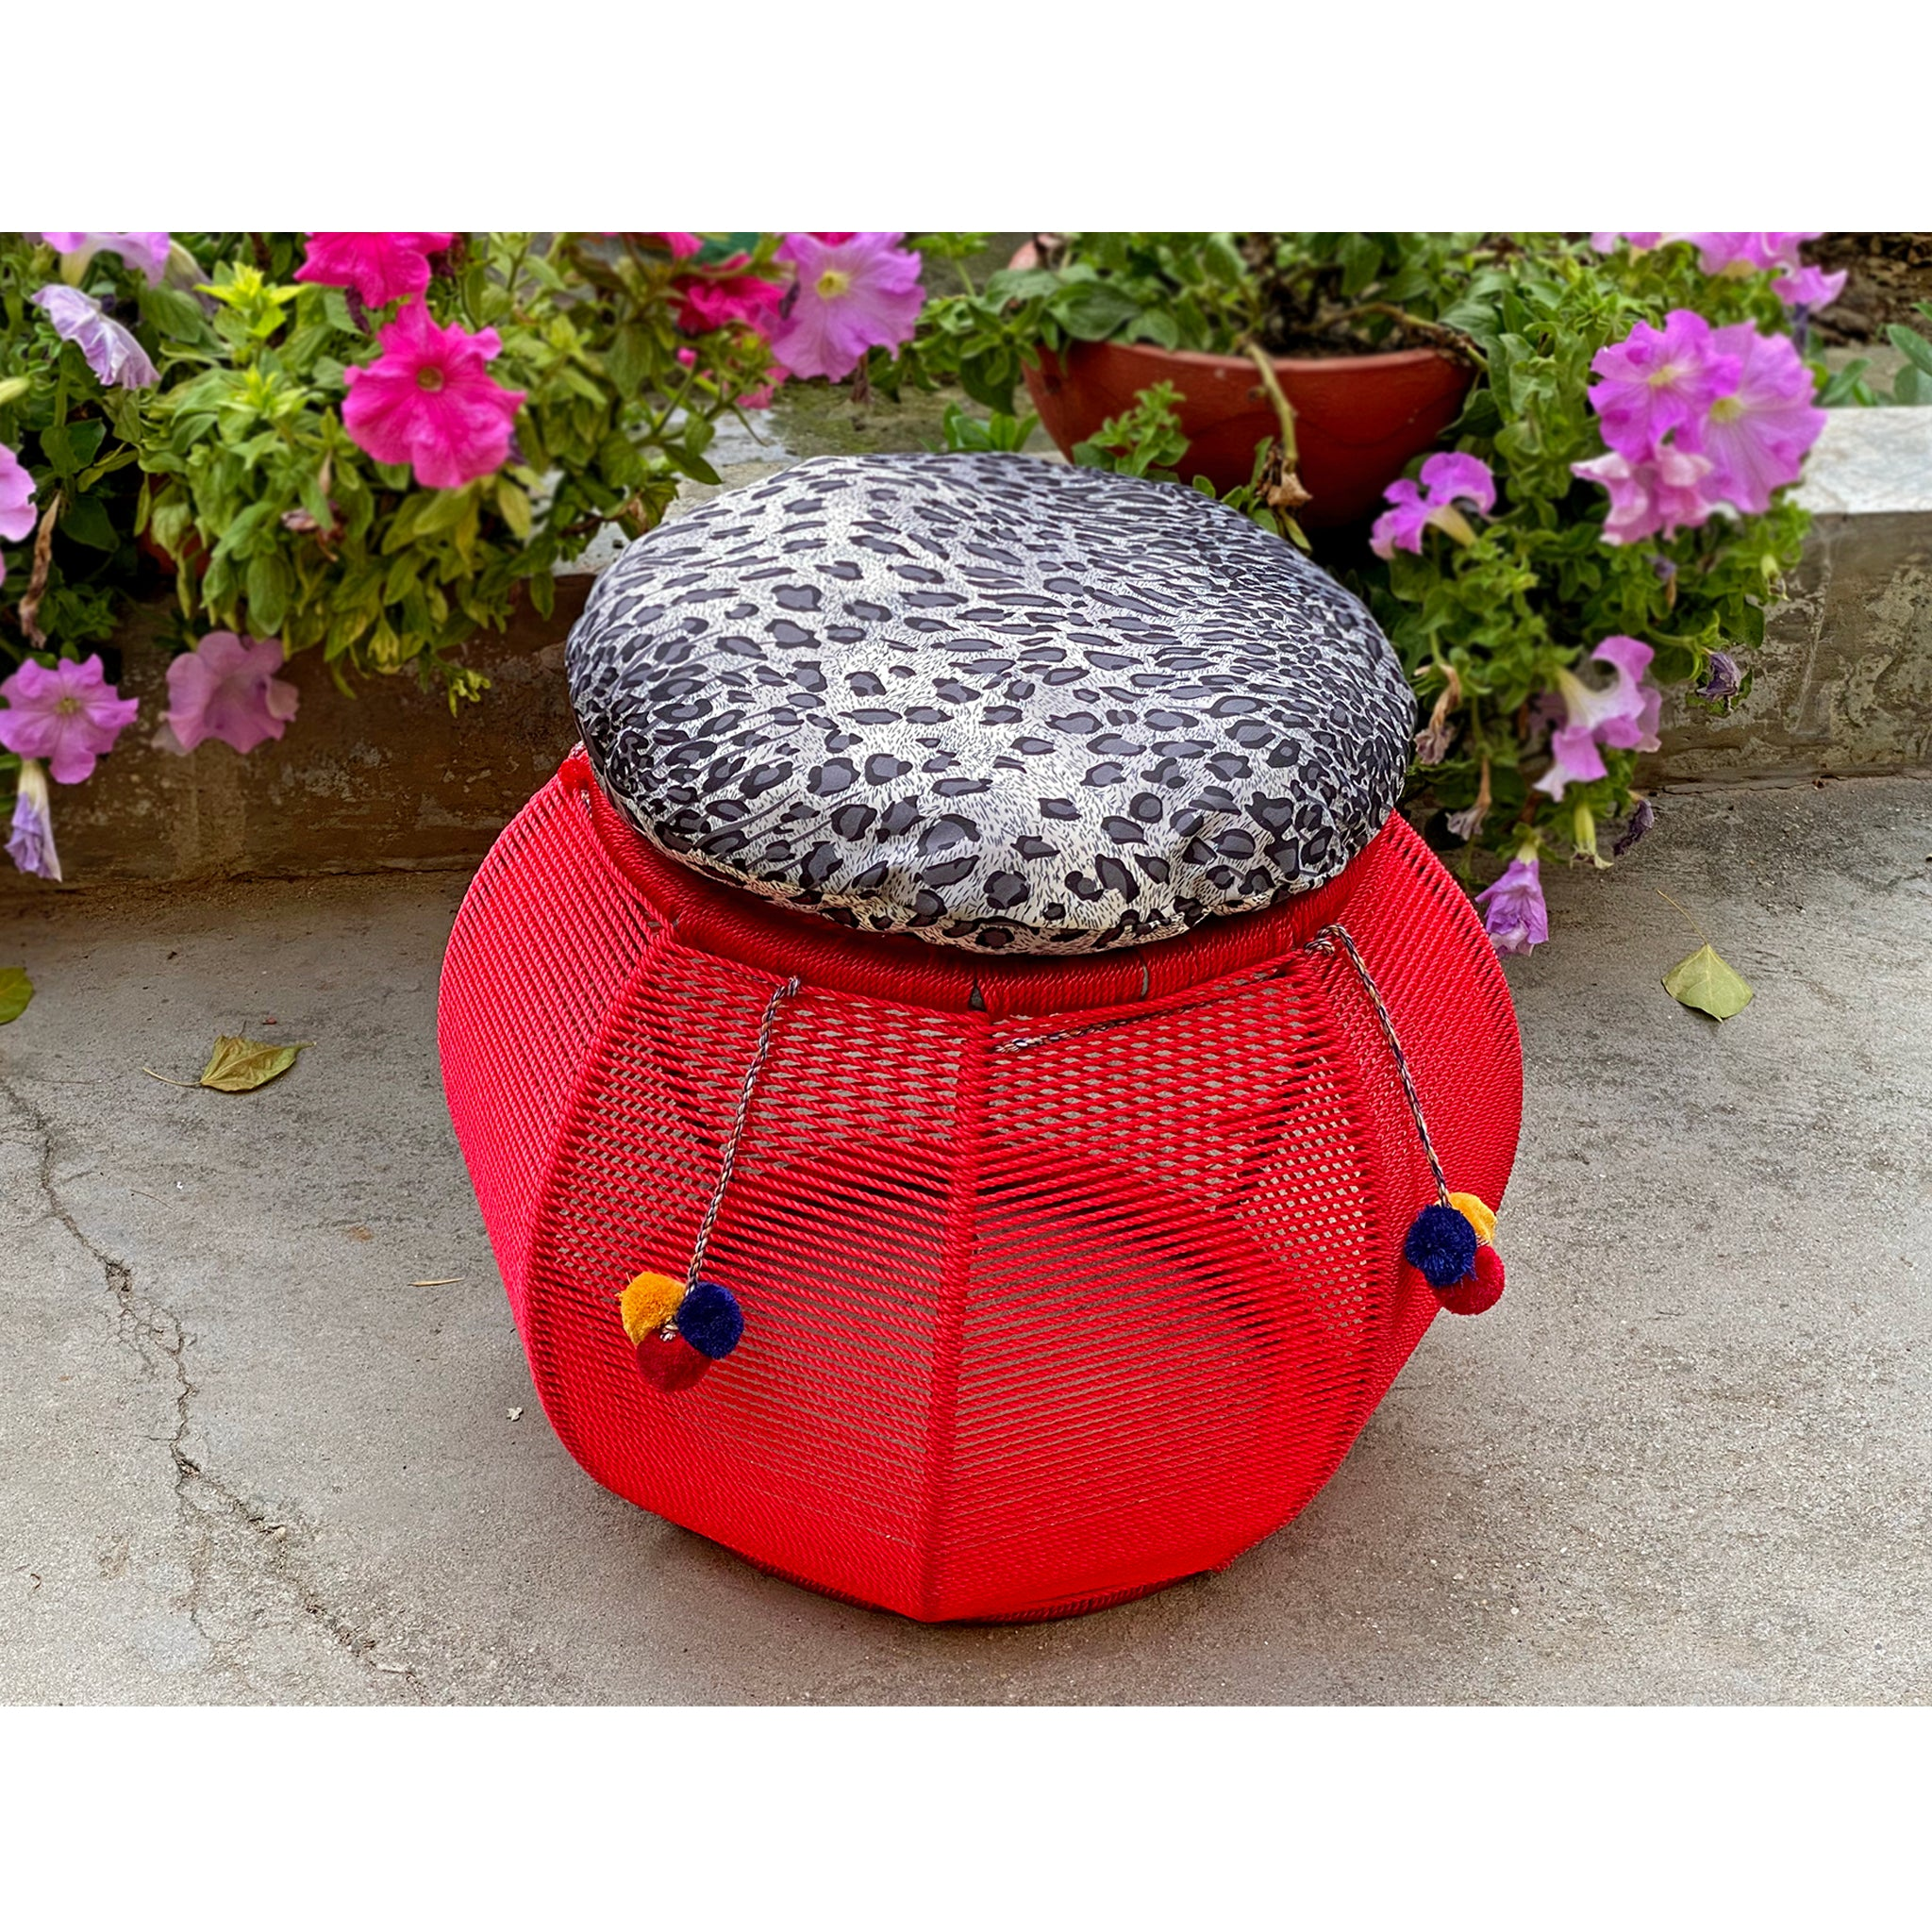 Red Chilli Cushy Mudda Seat (Single Piece)